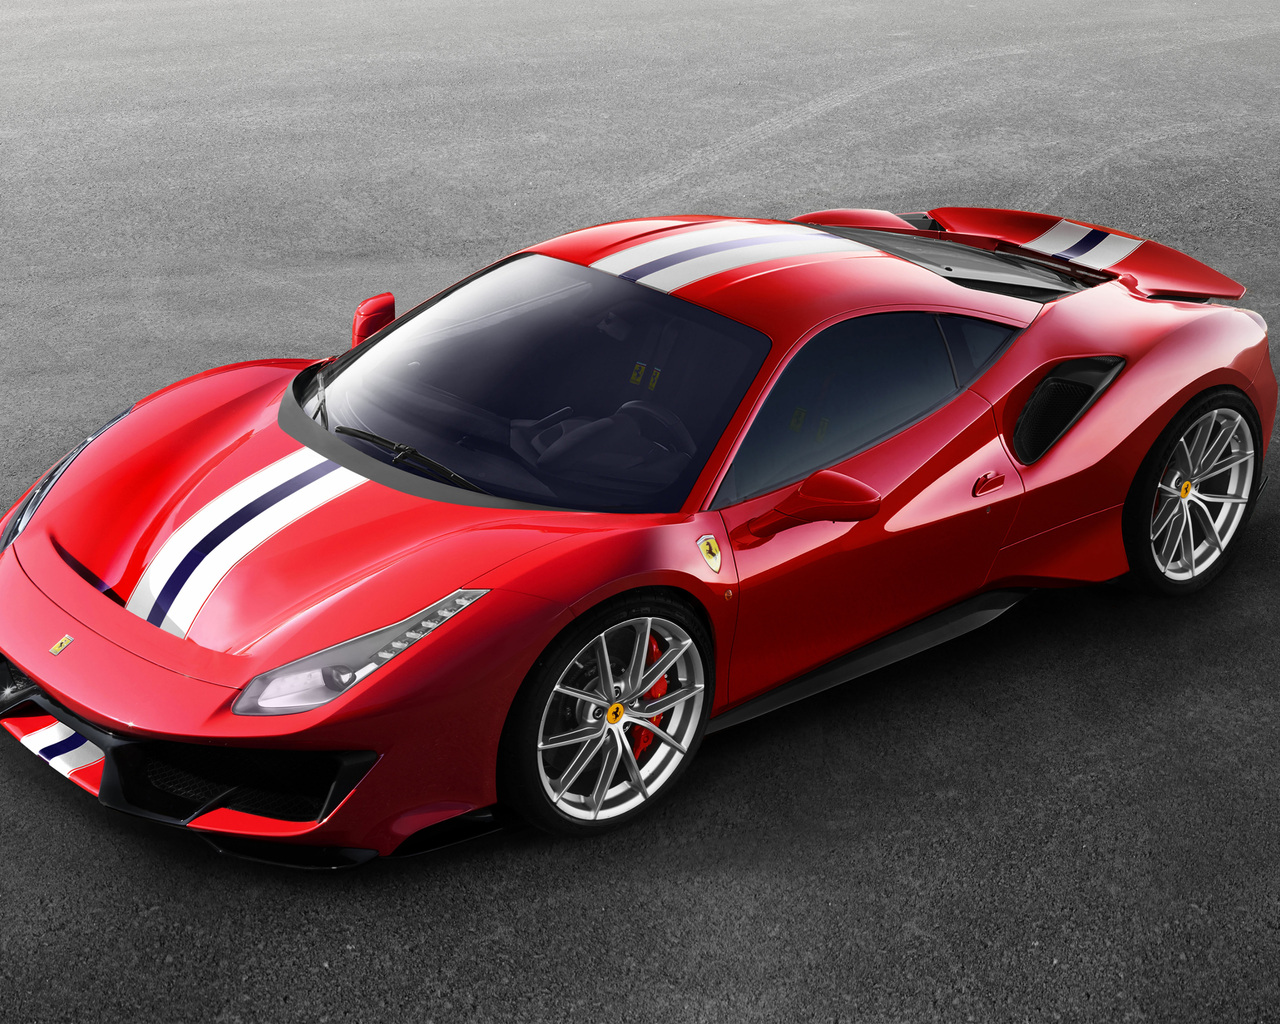 1280x1024 ferrari 488 pista 2018 side view 1280x1024. Black Bedroom Furniture Sets. Home Design Ideas